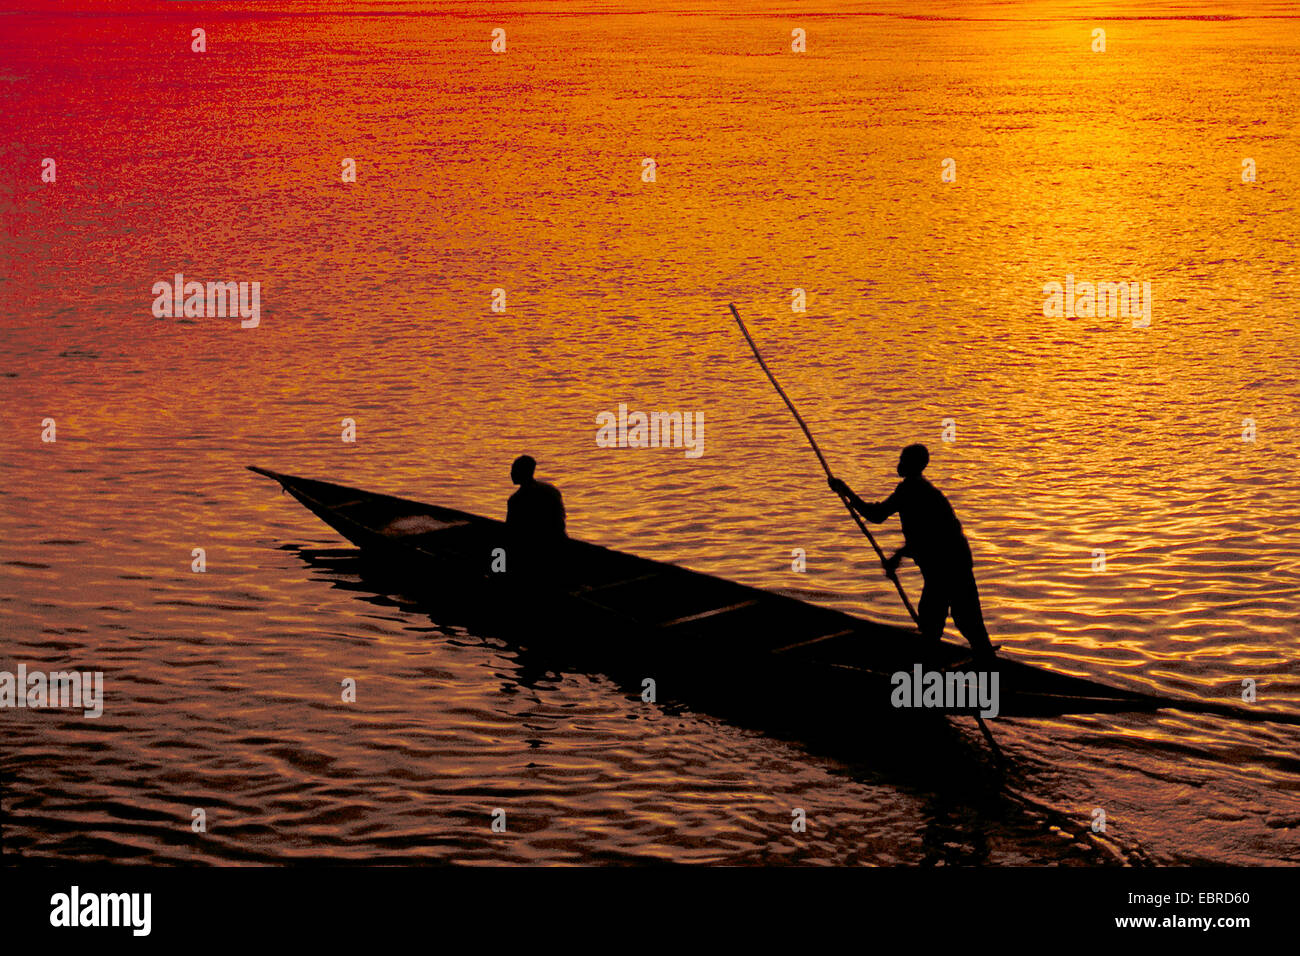 fishing boot at sunset, Mali Stock Photo